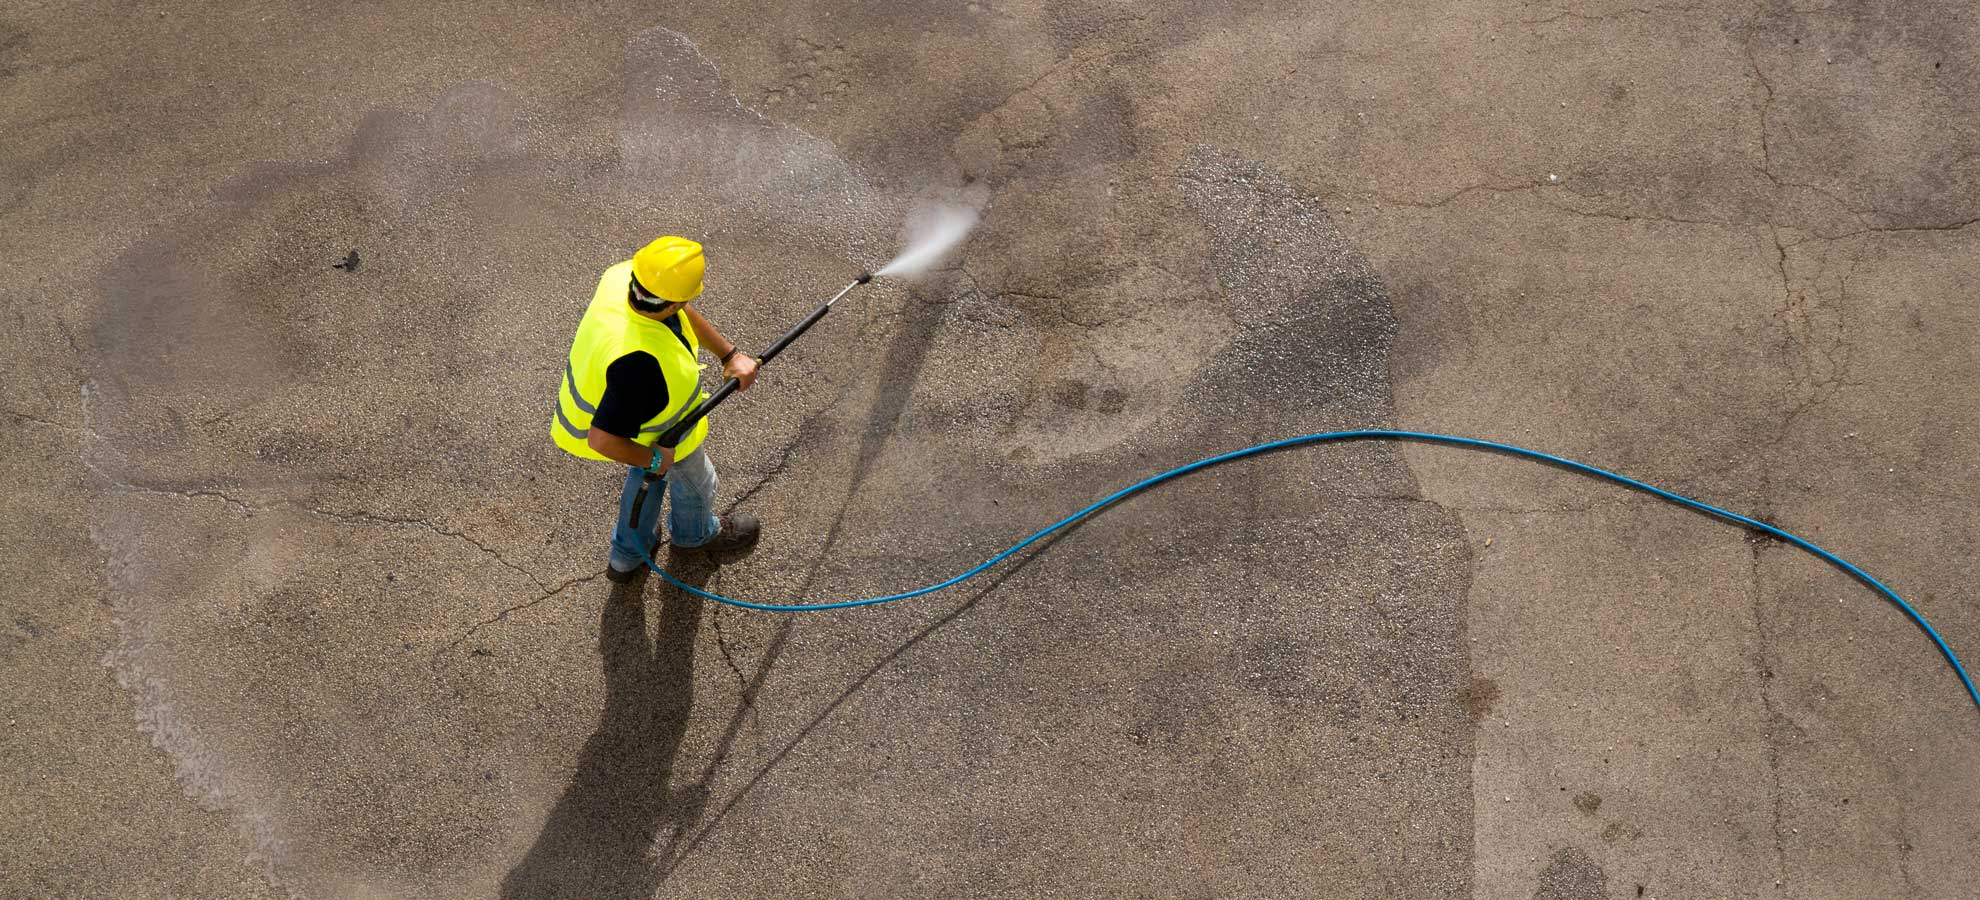 Pressure Washing Sidewalks